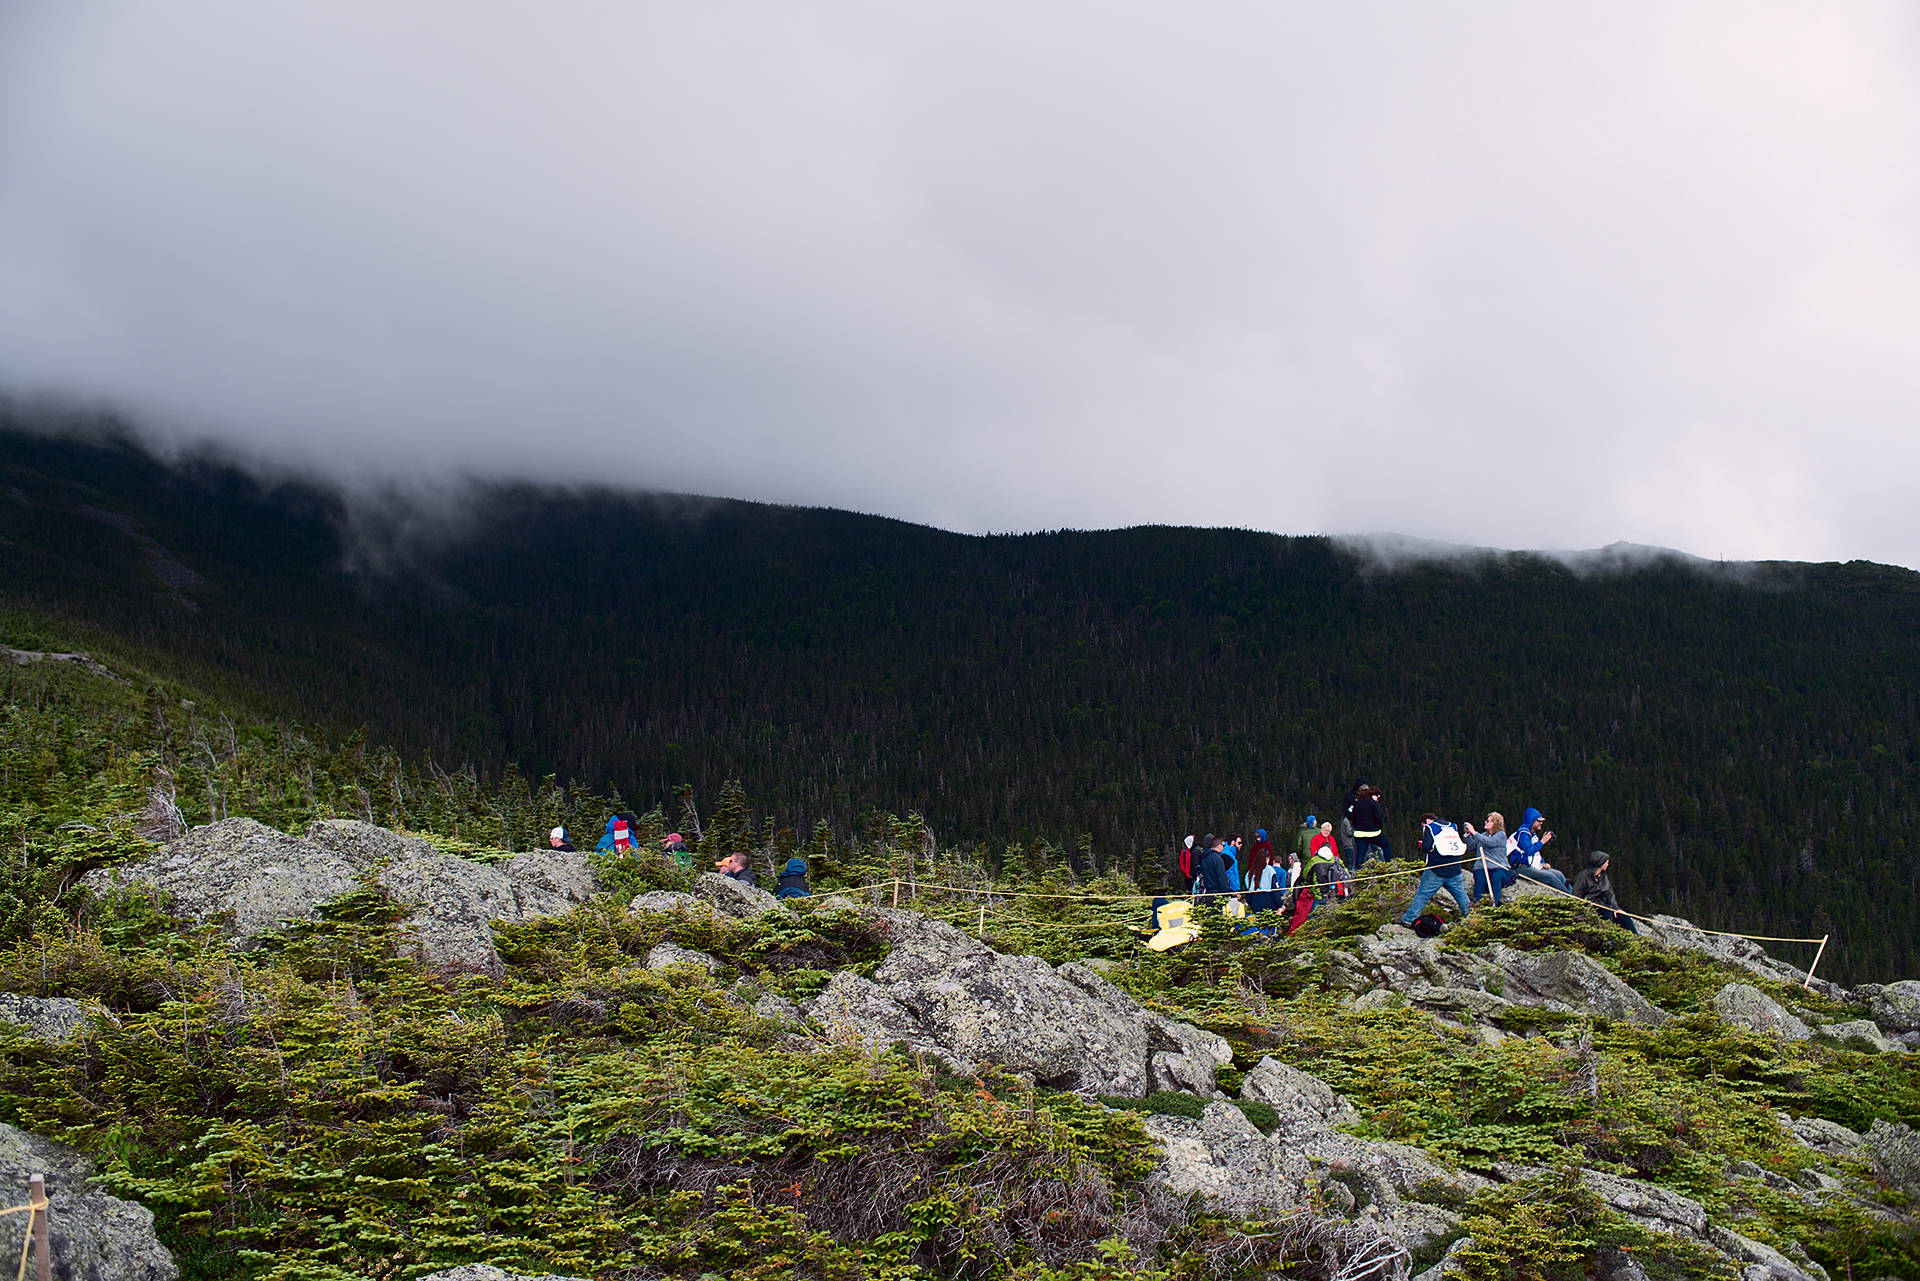 Rain clouds coming in and rolling over the peaks on Mount Washington during Climb to the Clouds 2017